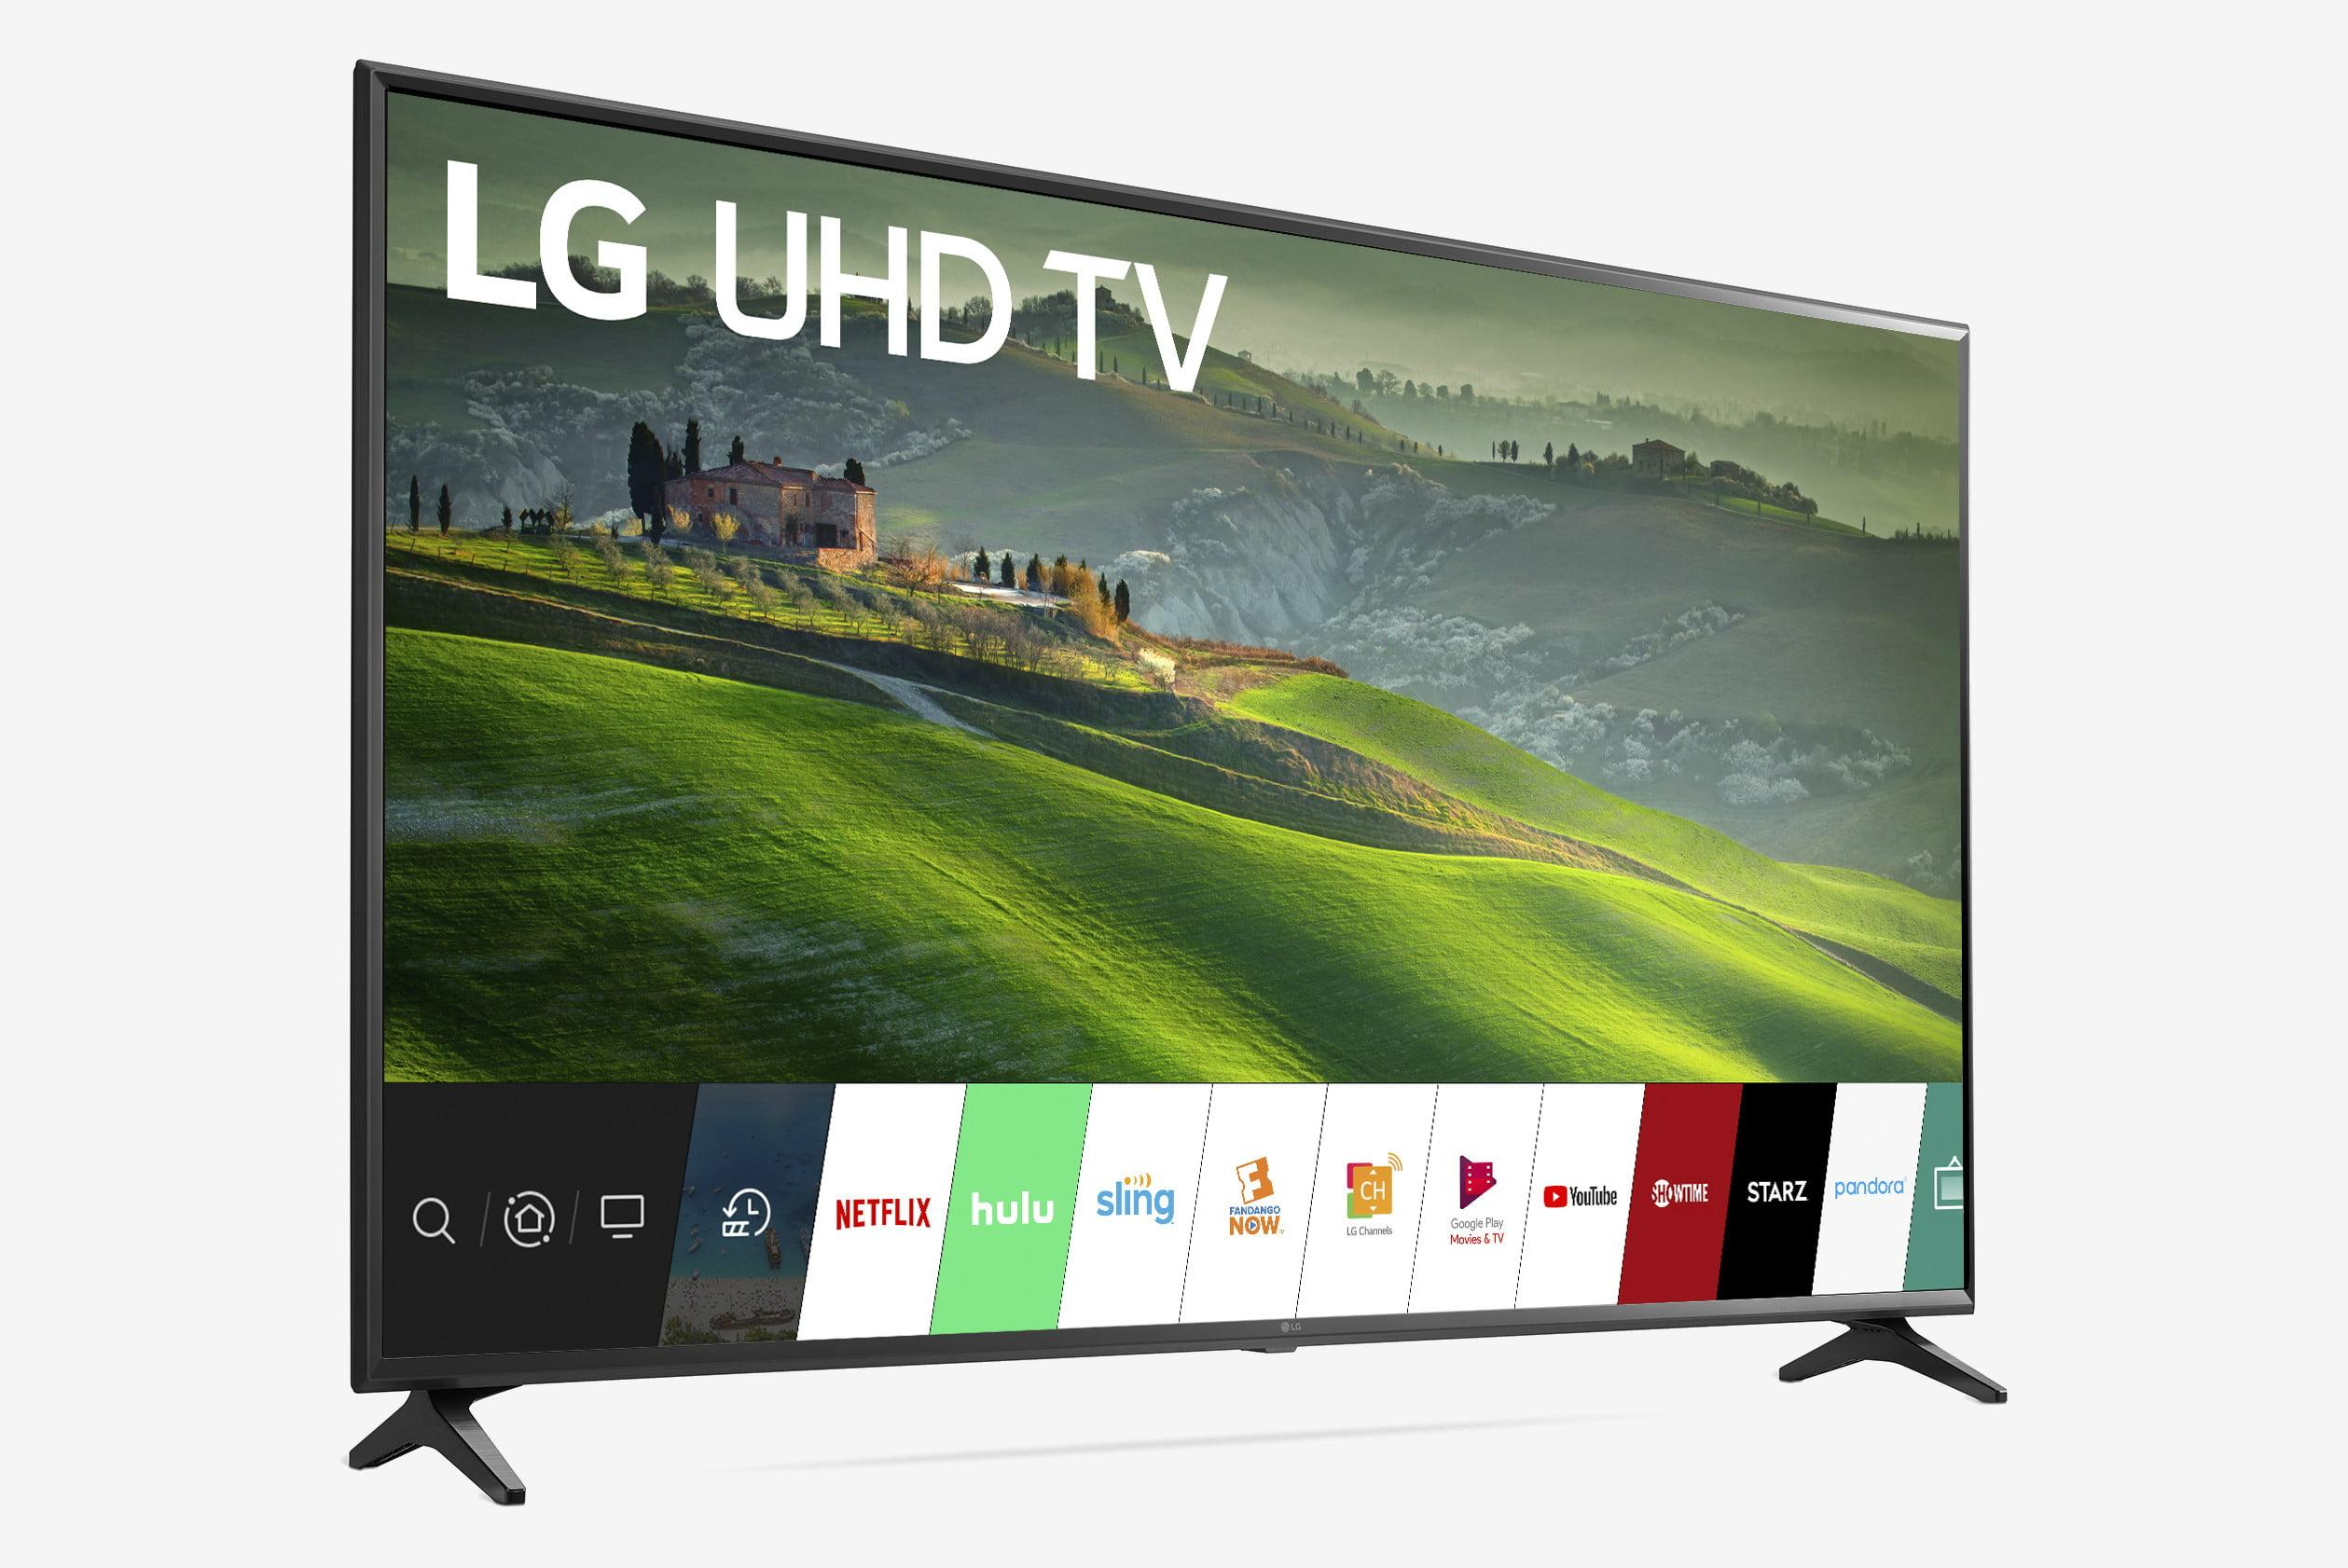 Up to date | This 65-inch LG 4K ultra HD smart TV is down to